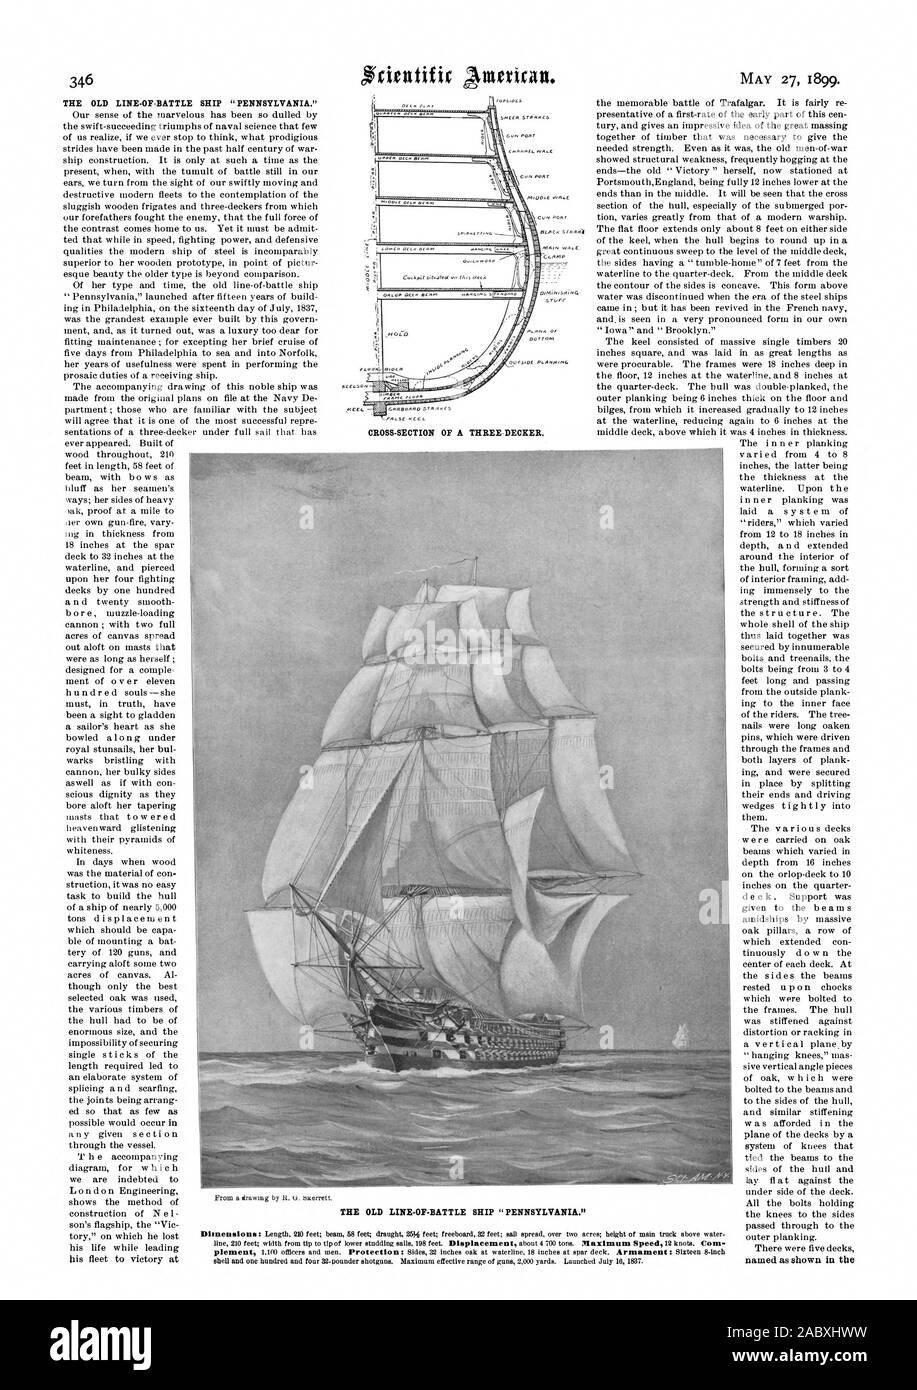 CROSS-SECTION OF A THREE DECKER. THE OLD LINE-OF-BATTLE SHIP ' PENNSYLVANIA.'.- . . THE OLD LINE-OF-BATTLE SHIP 'PENNSYLVANIA.', scientific american, 1899-05-27 Stock Photo